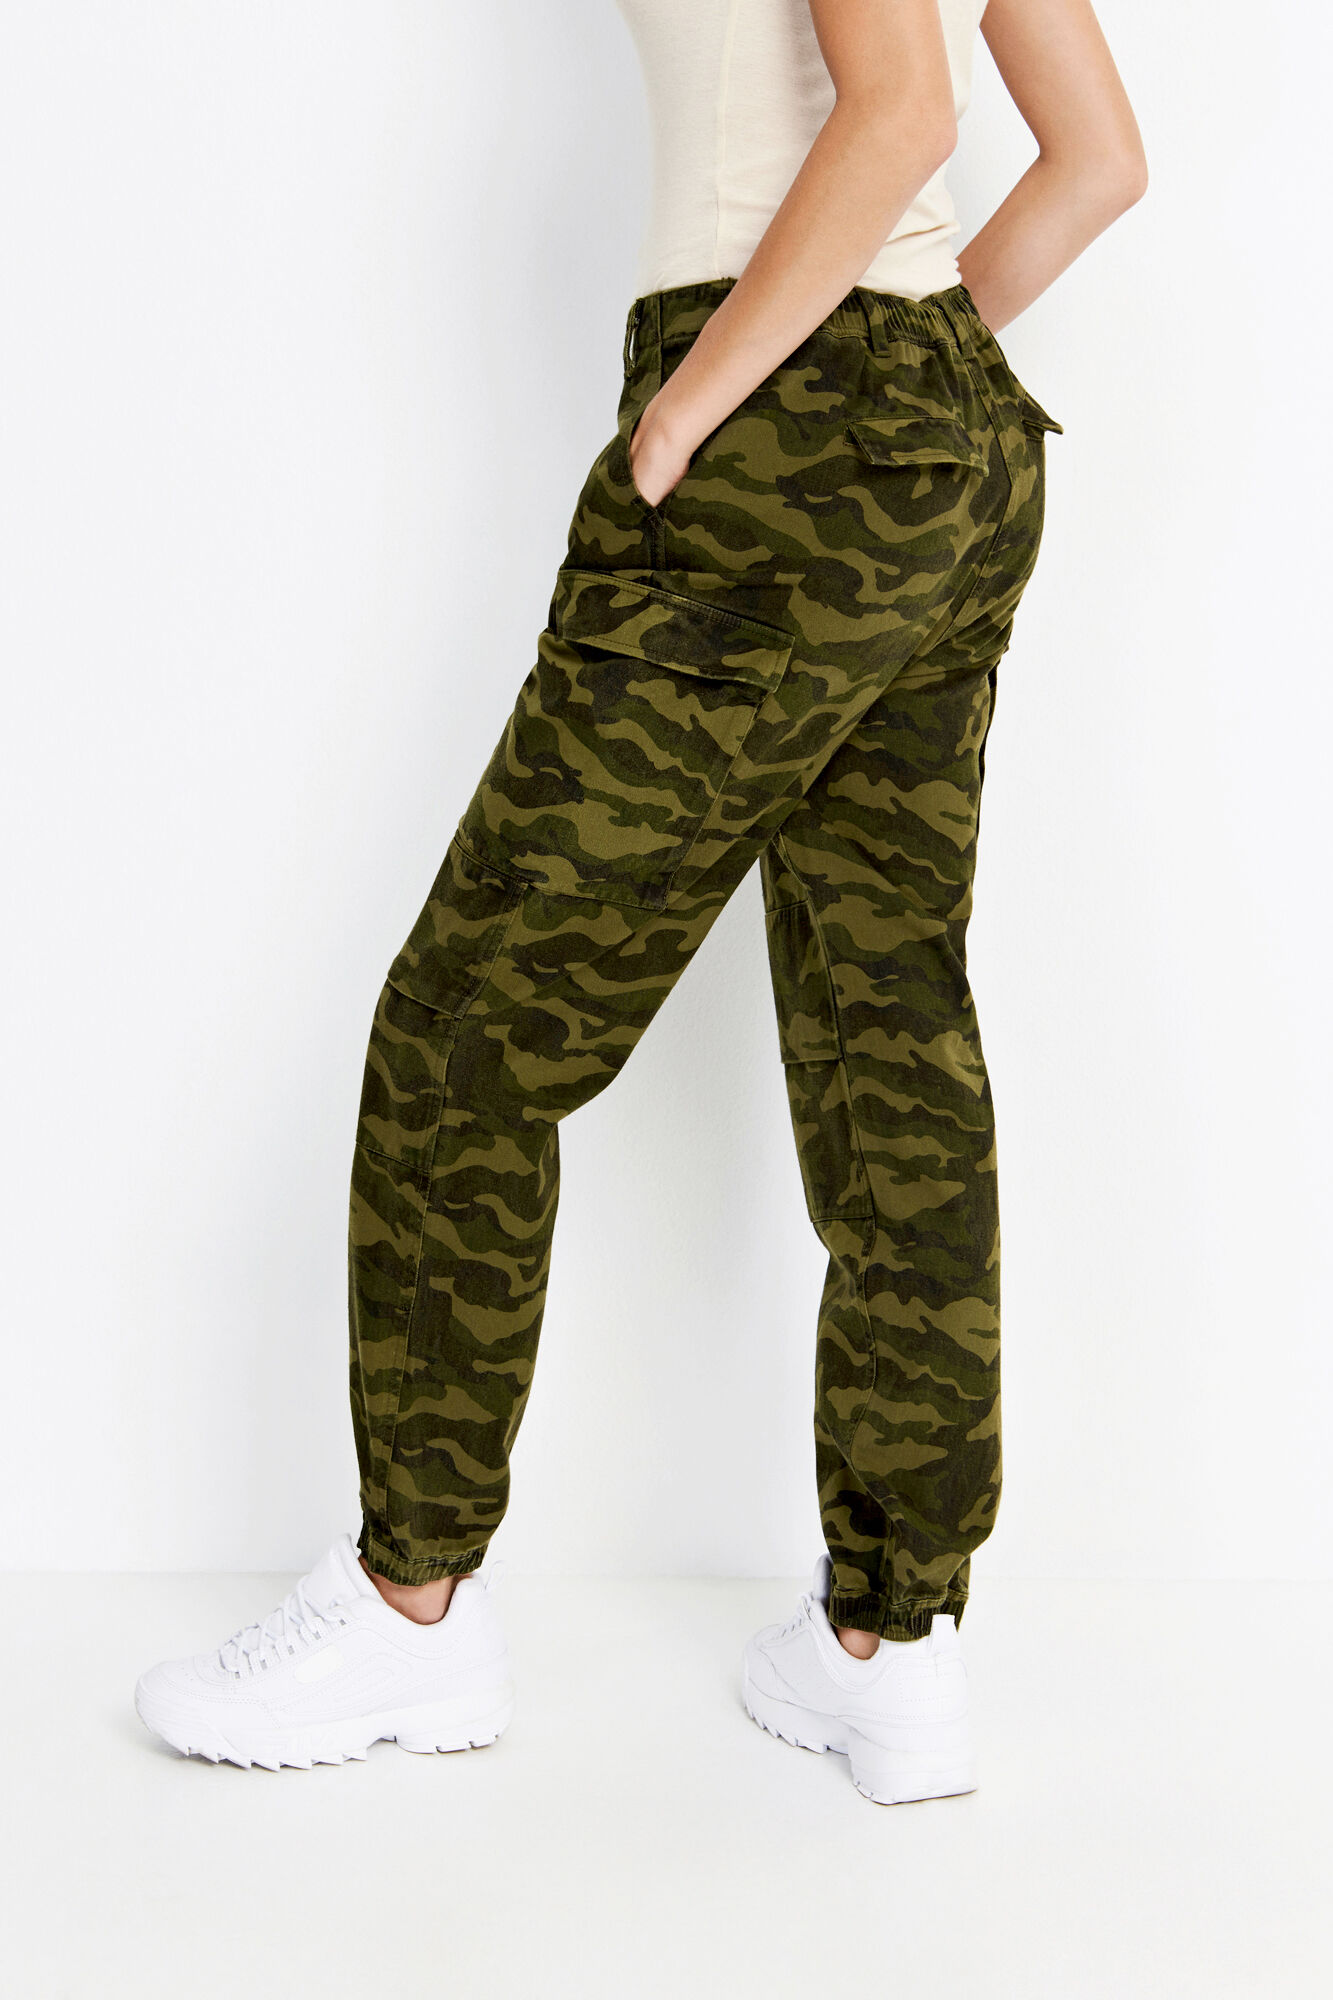 ENPERTH PANTS CAMO 6586